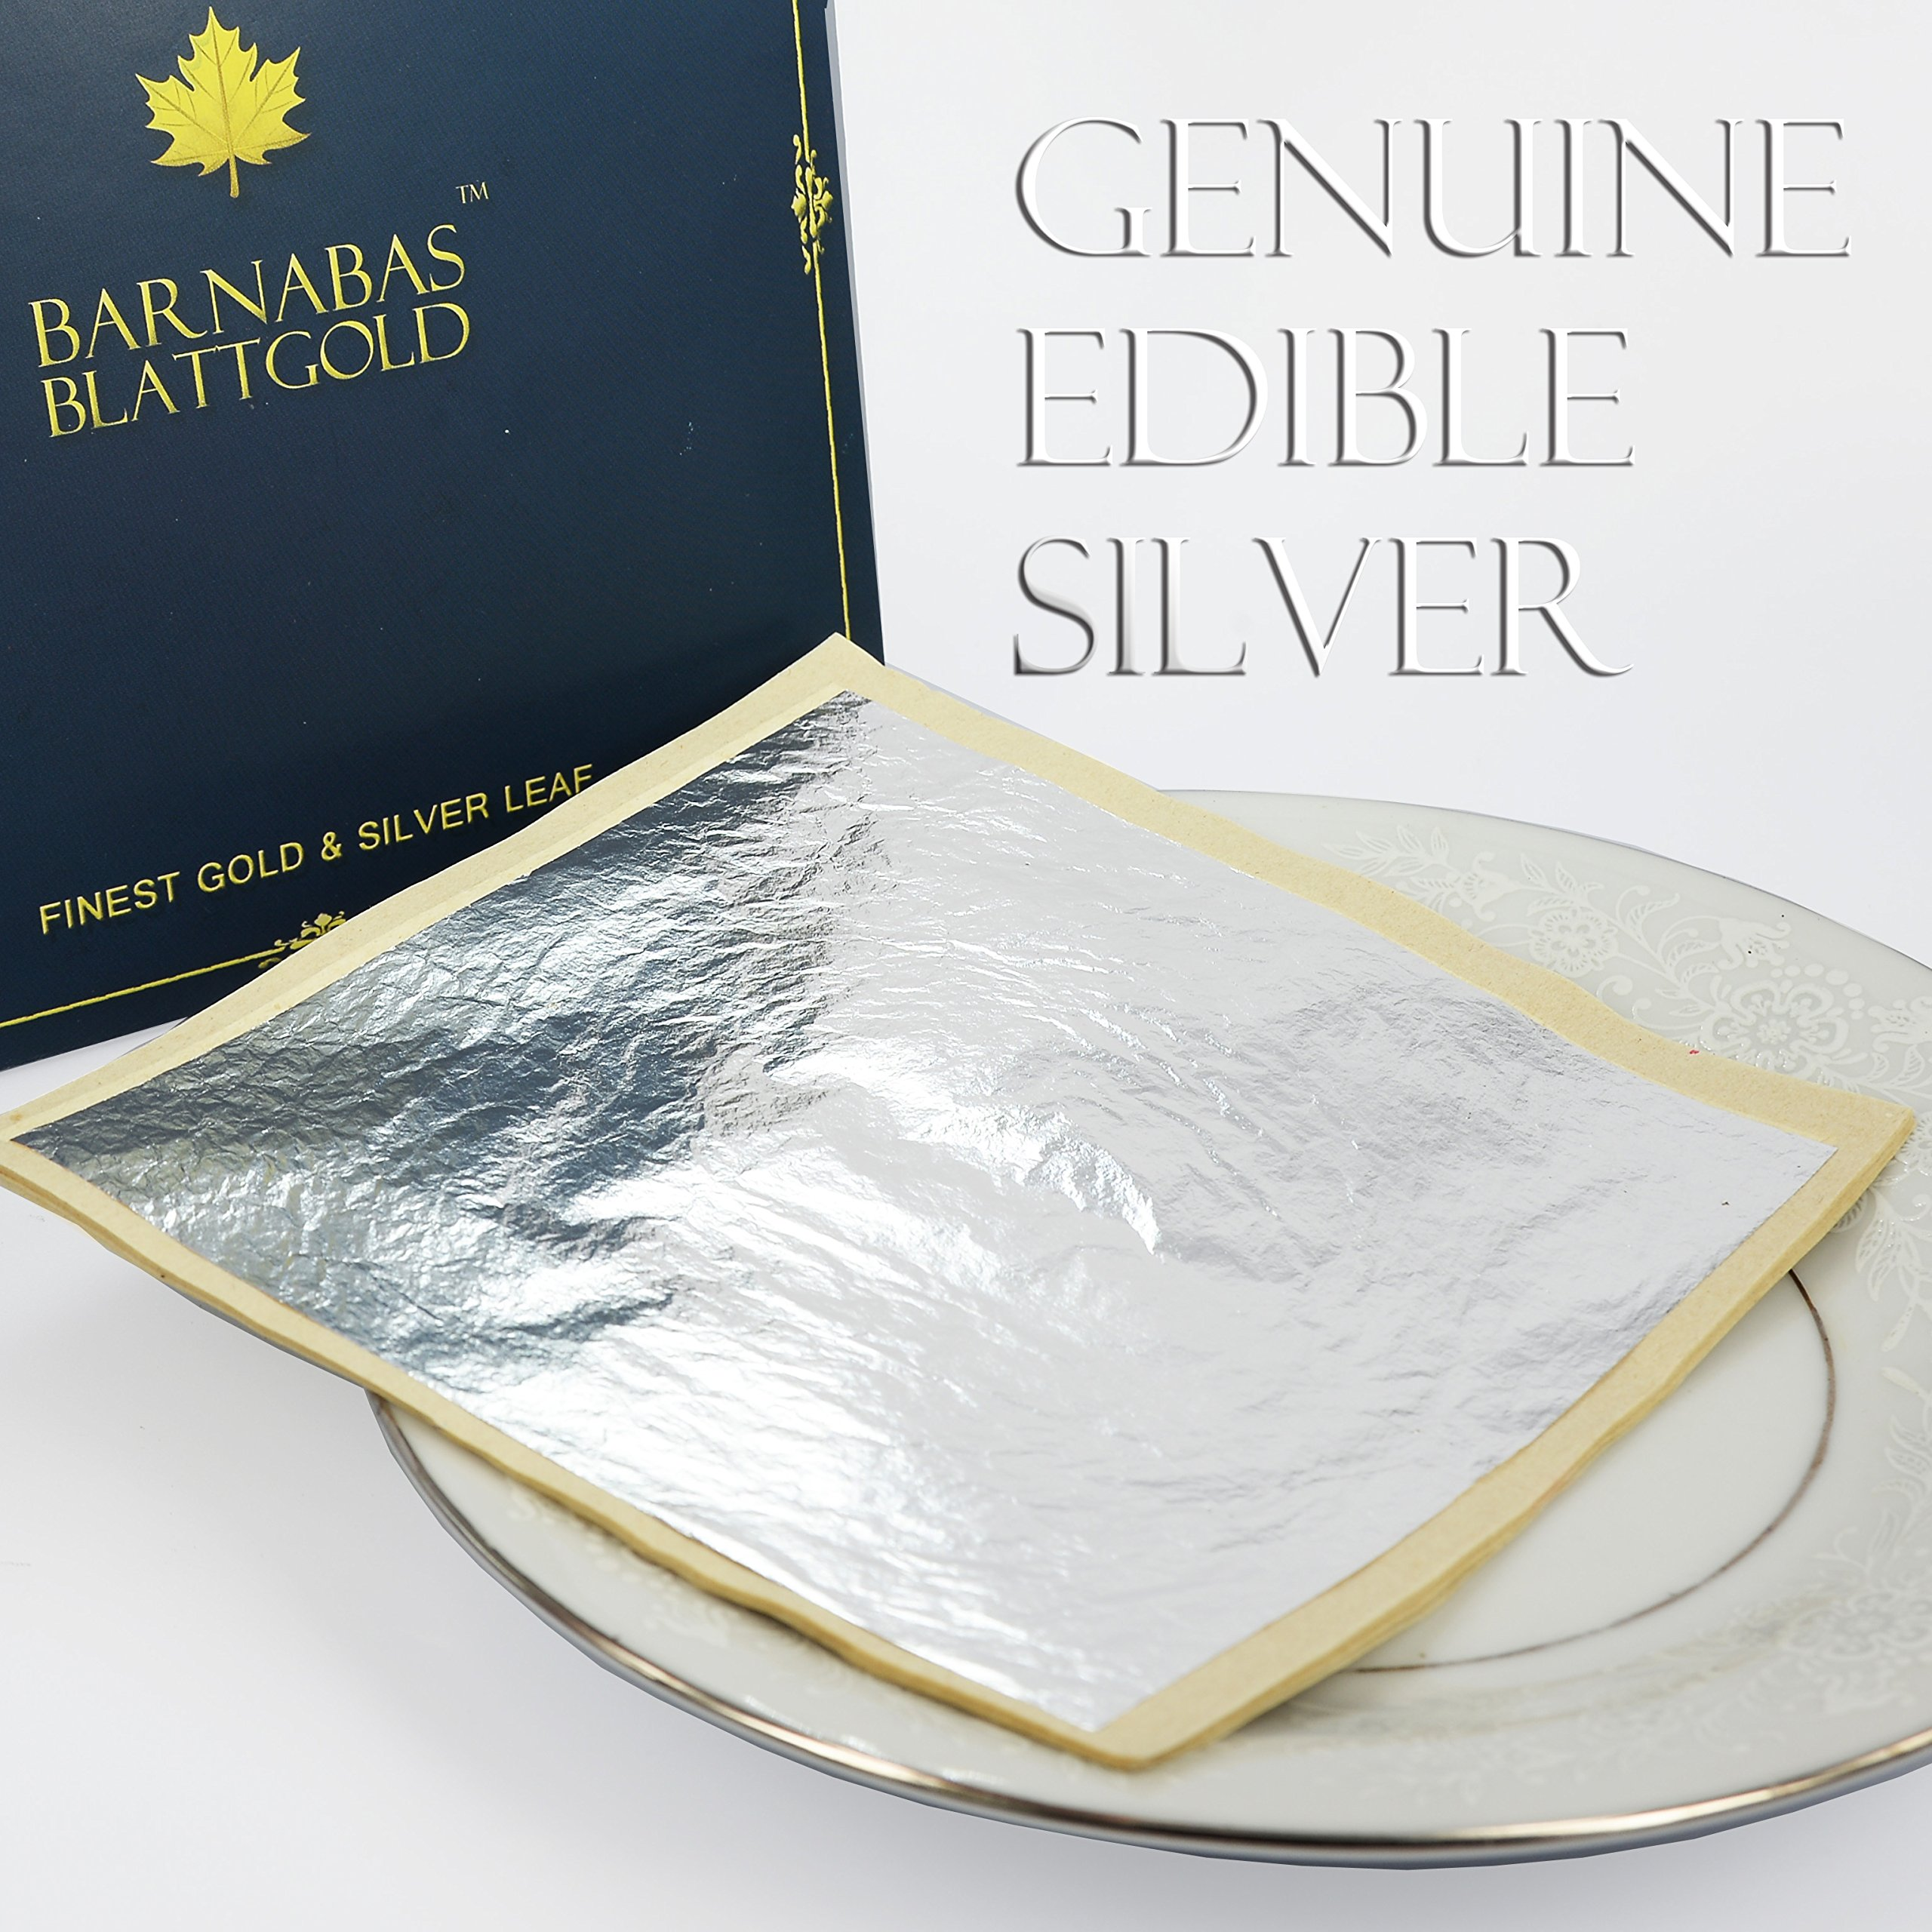 Edible Genuine Silver Leaf Sheets - by Barnabas Blattgold - Large 4.4 inches - 25 Sheets - Loose Leaf by BARNABAS BLATTGOLD